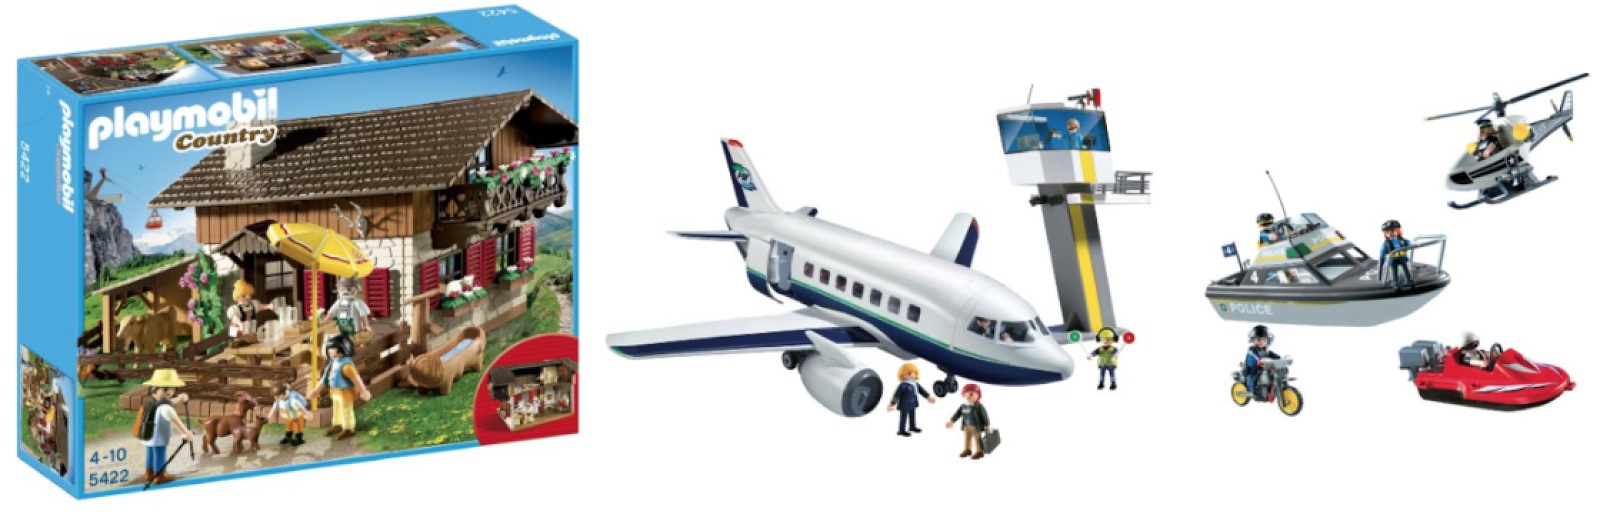 http://www.thebinderladies.com/2014/12/amazon-12-highly-rated-playmobil-sets.html#.VJI4PofduyM